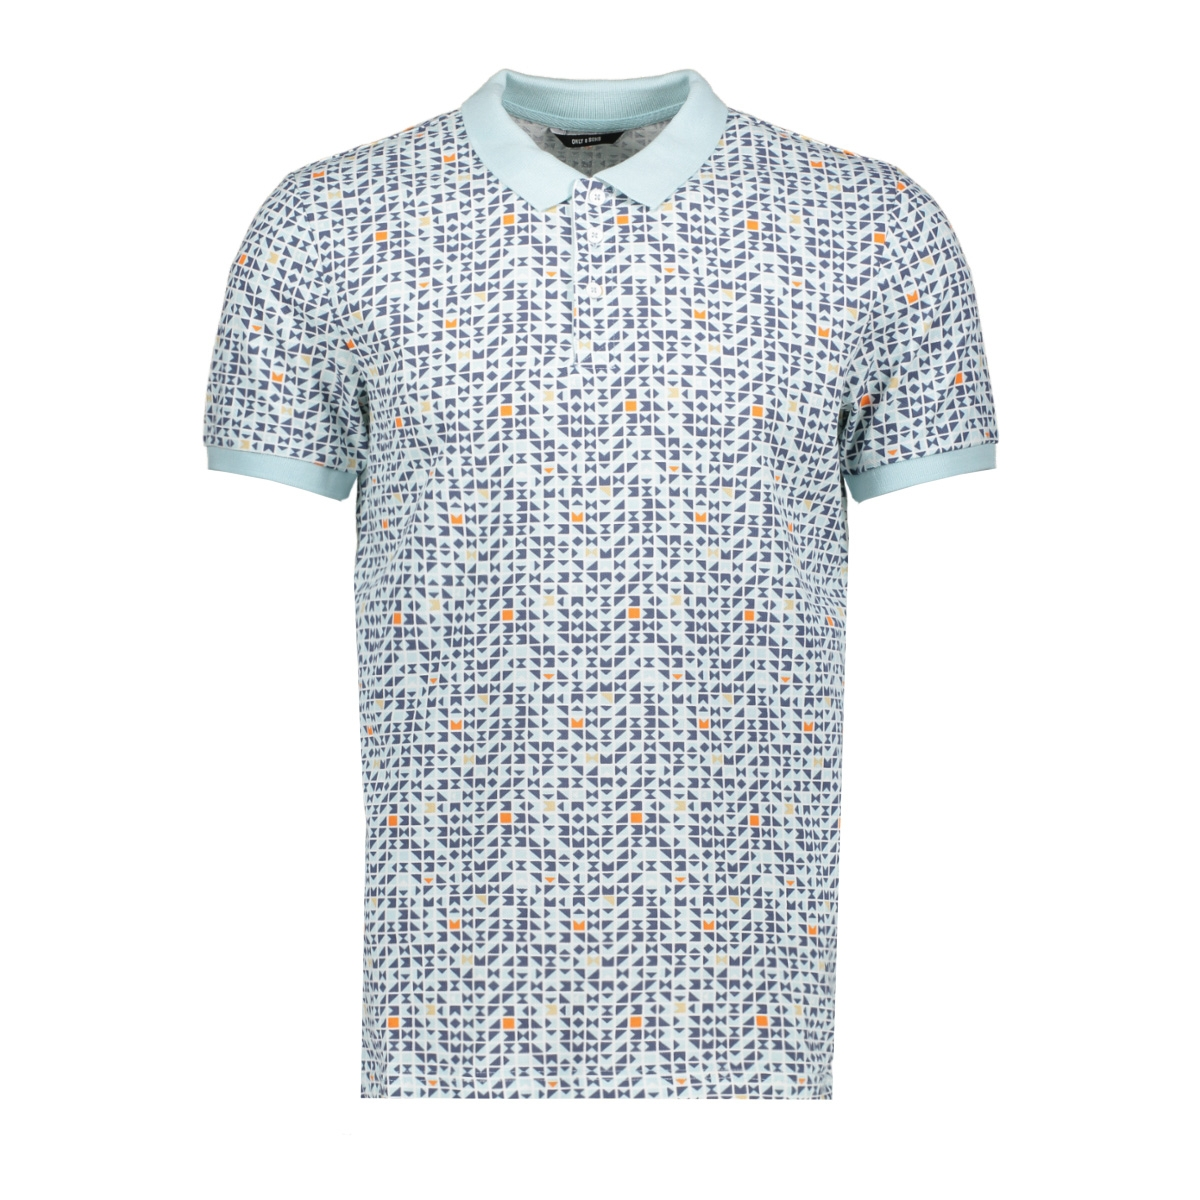 onstrey pique ss polo 22015168 only & sons polo blue ice